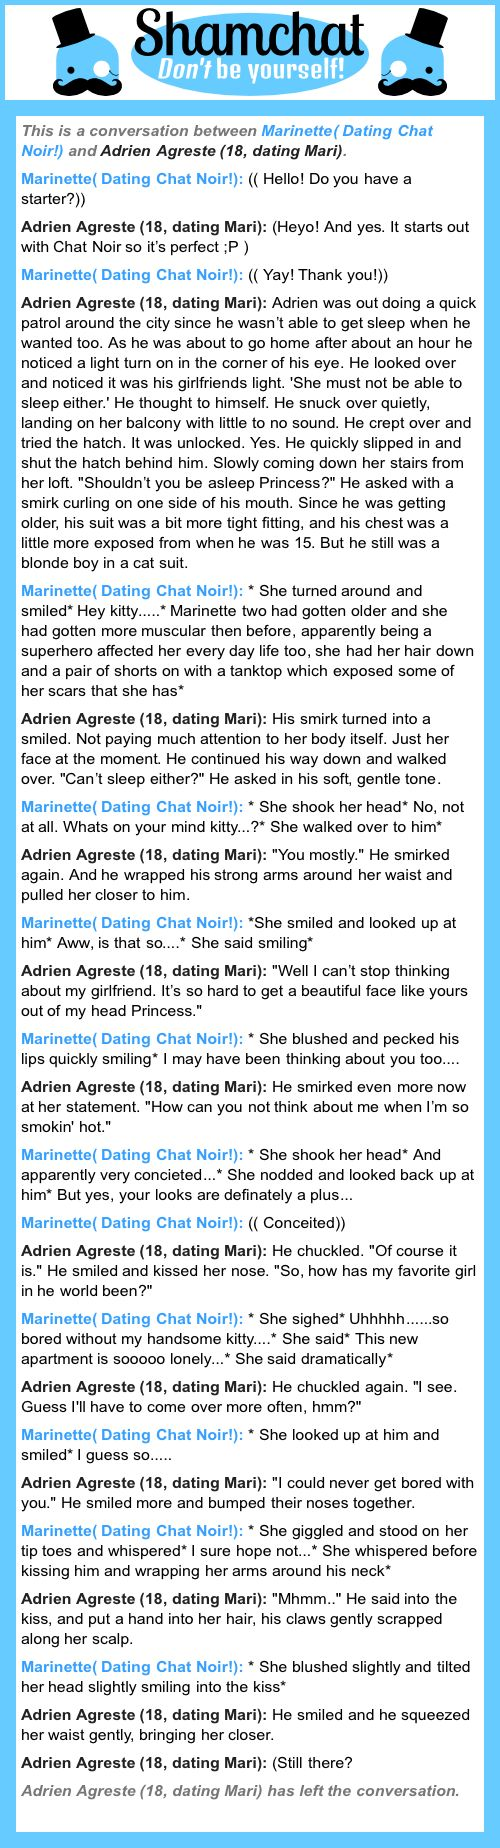 A conversation between Adrien Agreste (18, dating Mari) and Marinette( Dating Chat Noir!)